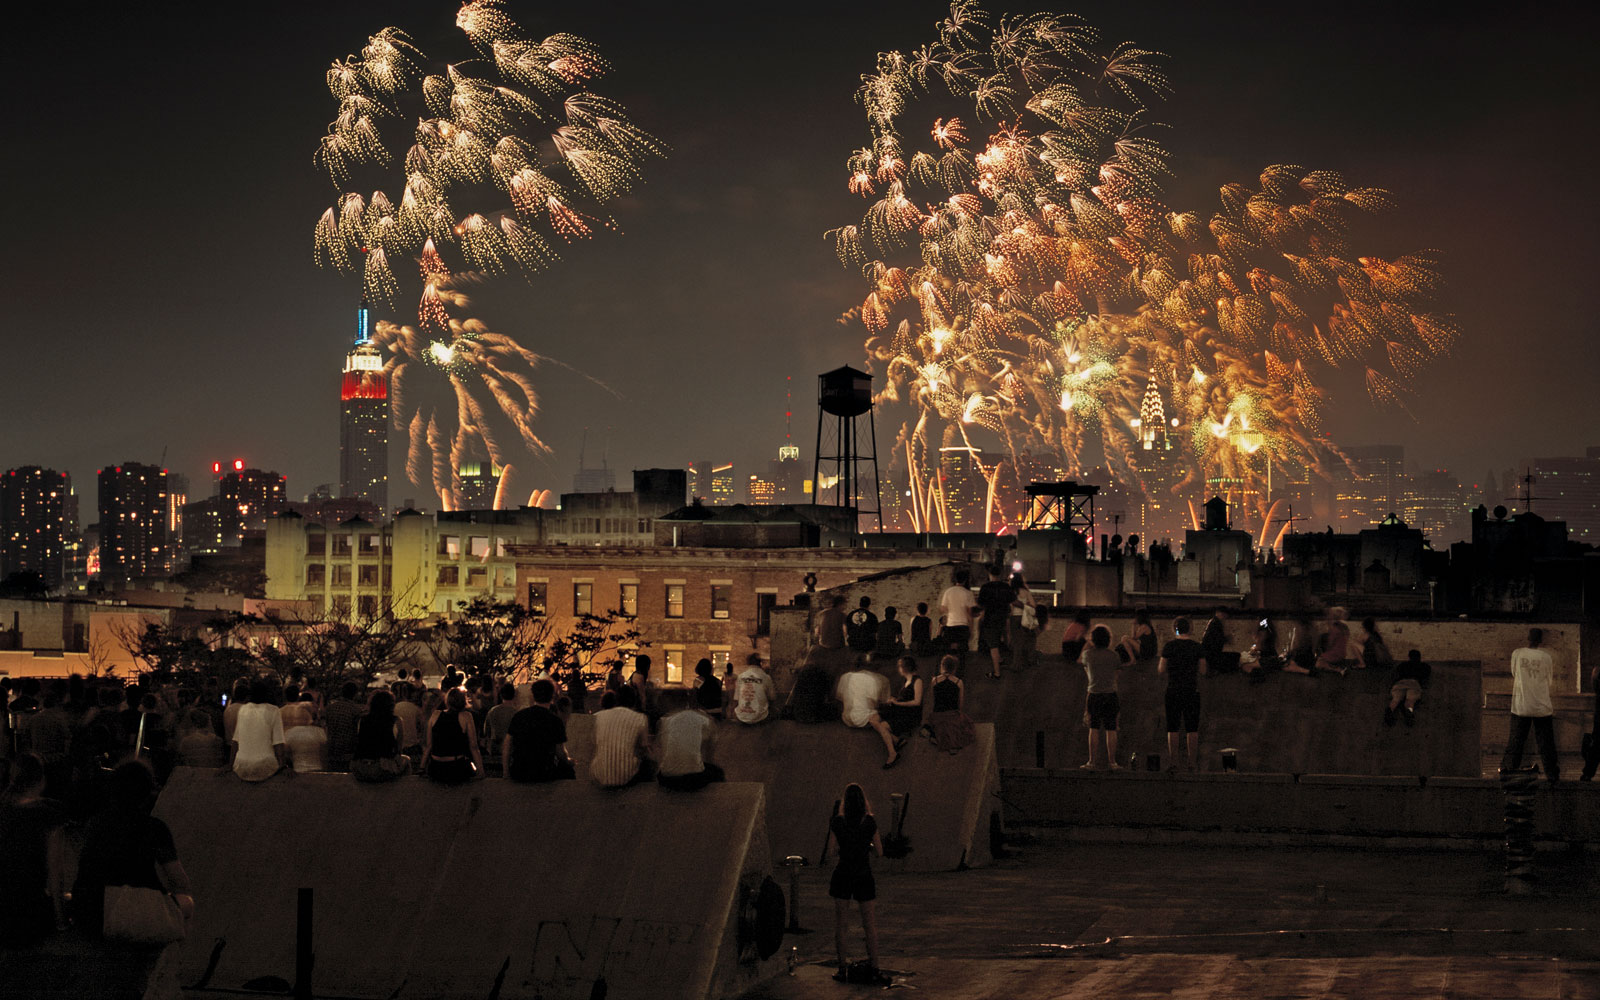 The Best Free 4th of July Fireworks Shows Across the U.S.